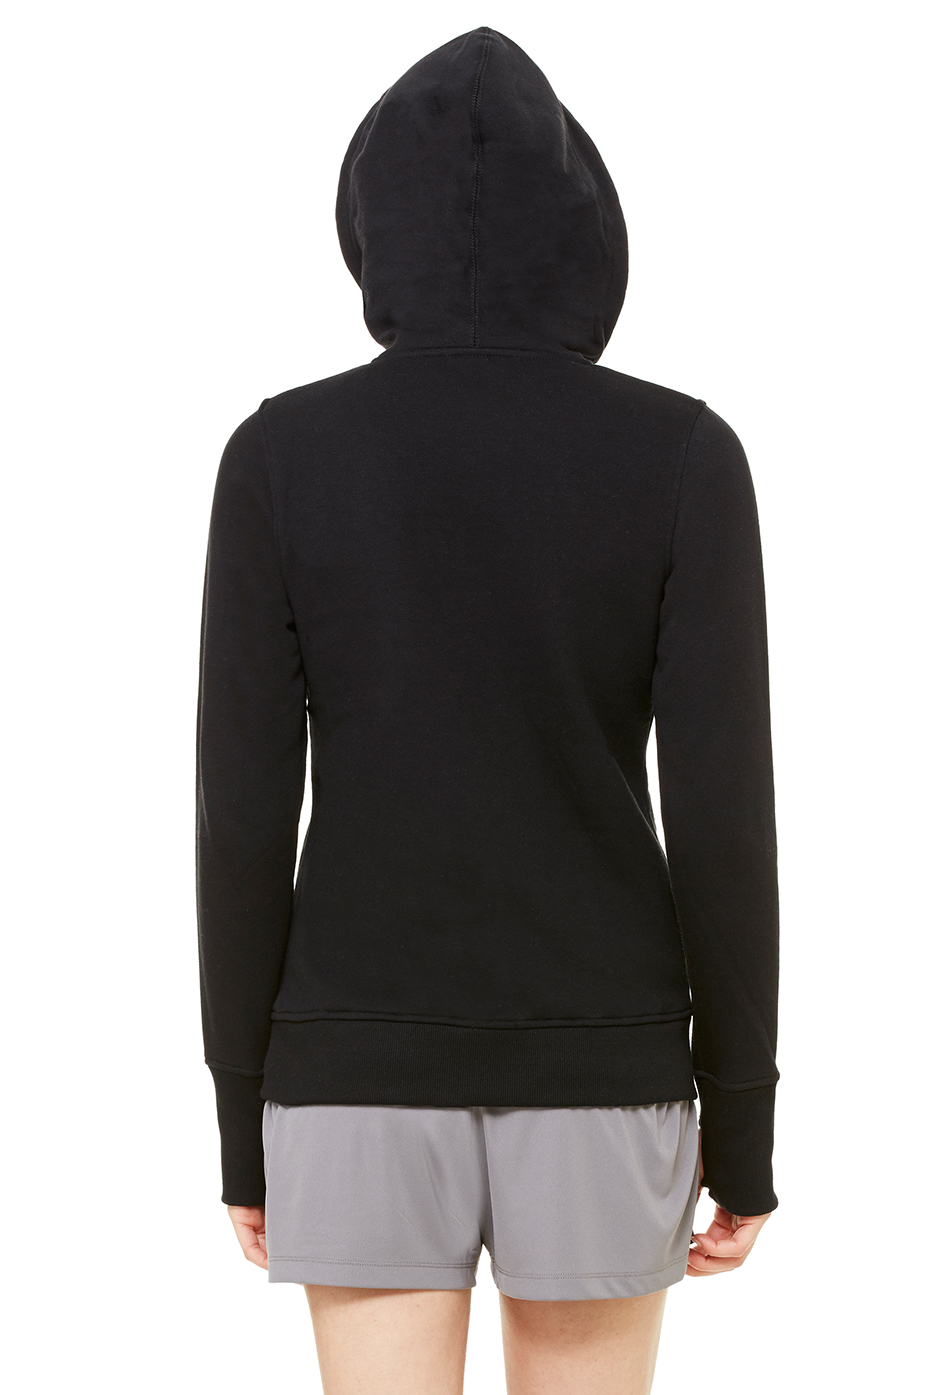 All Sport Women's Performance Fleece Full Zip Hoodie with Ru ...